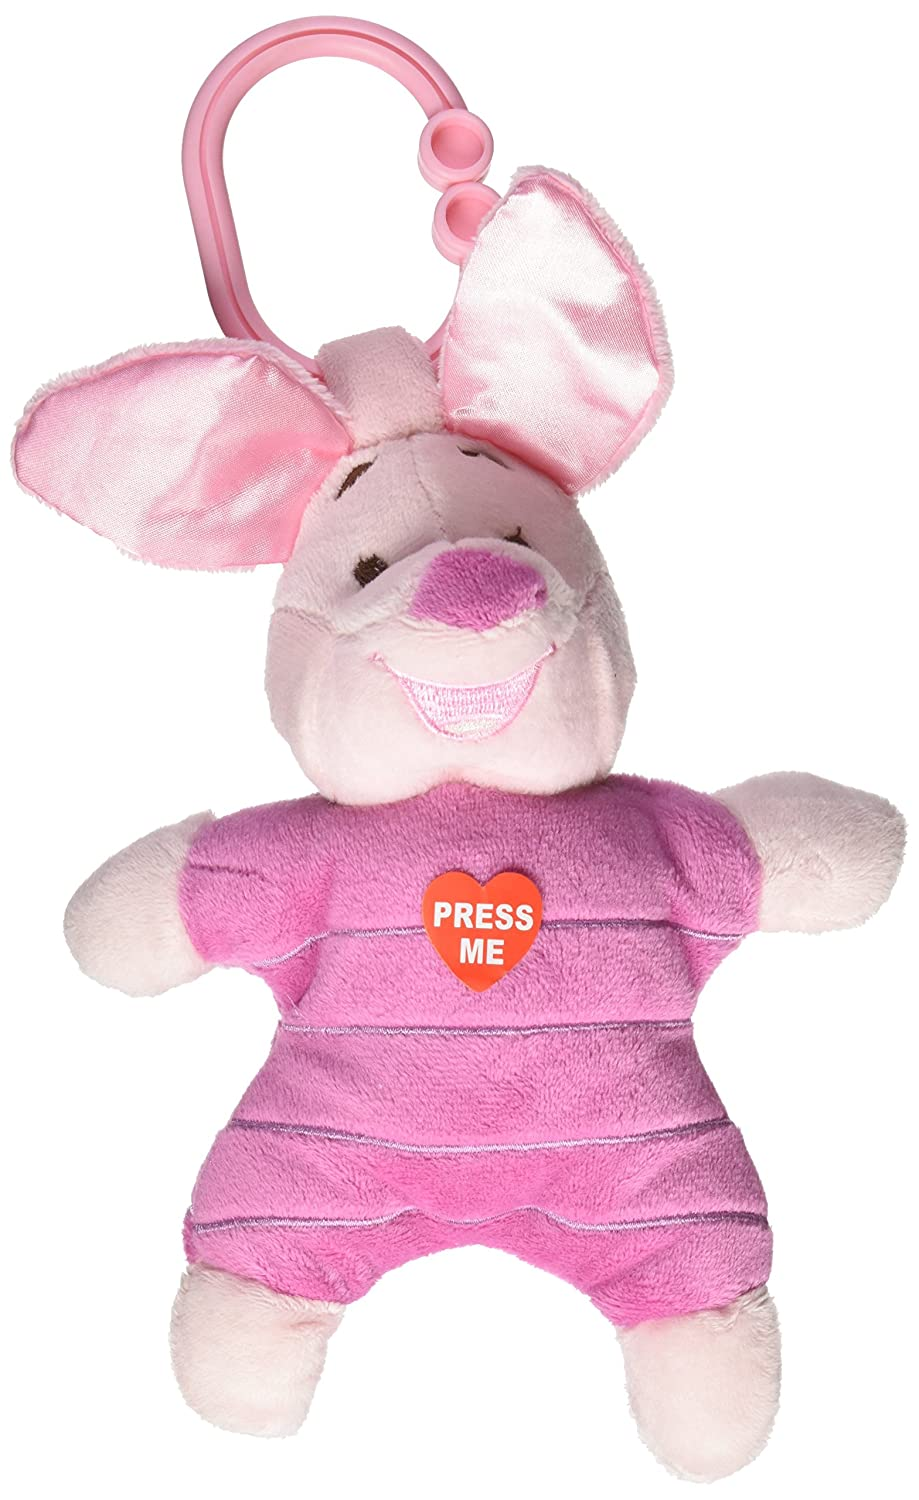 Attachable Light Up Musical Toy, Piglet by Kids Preferred